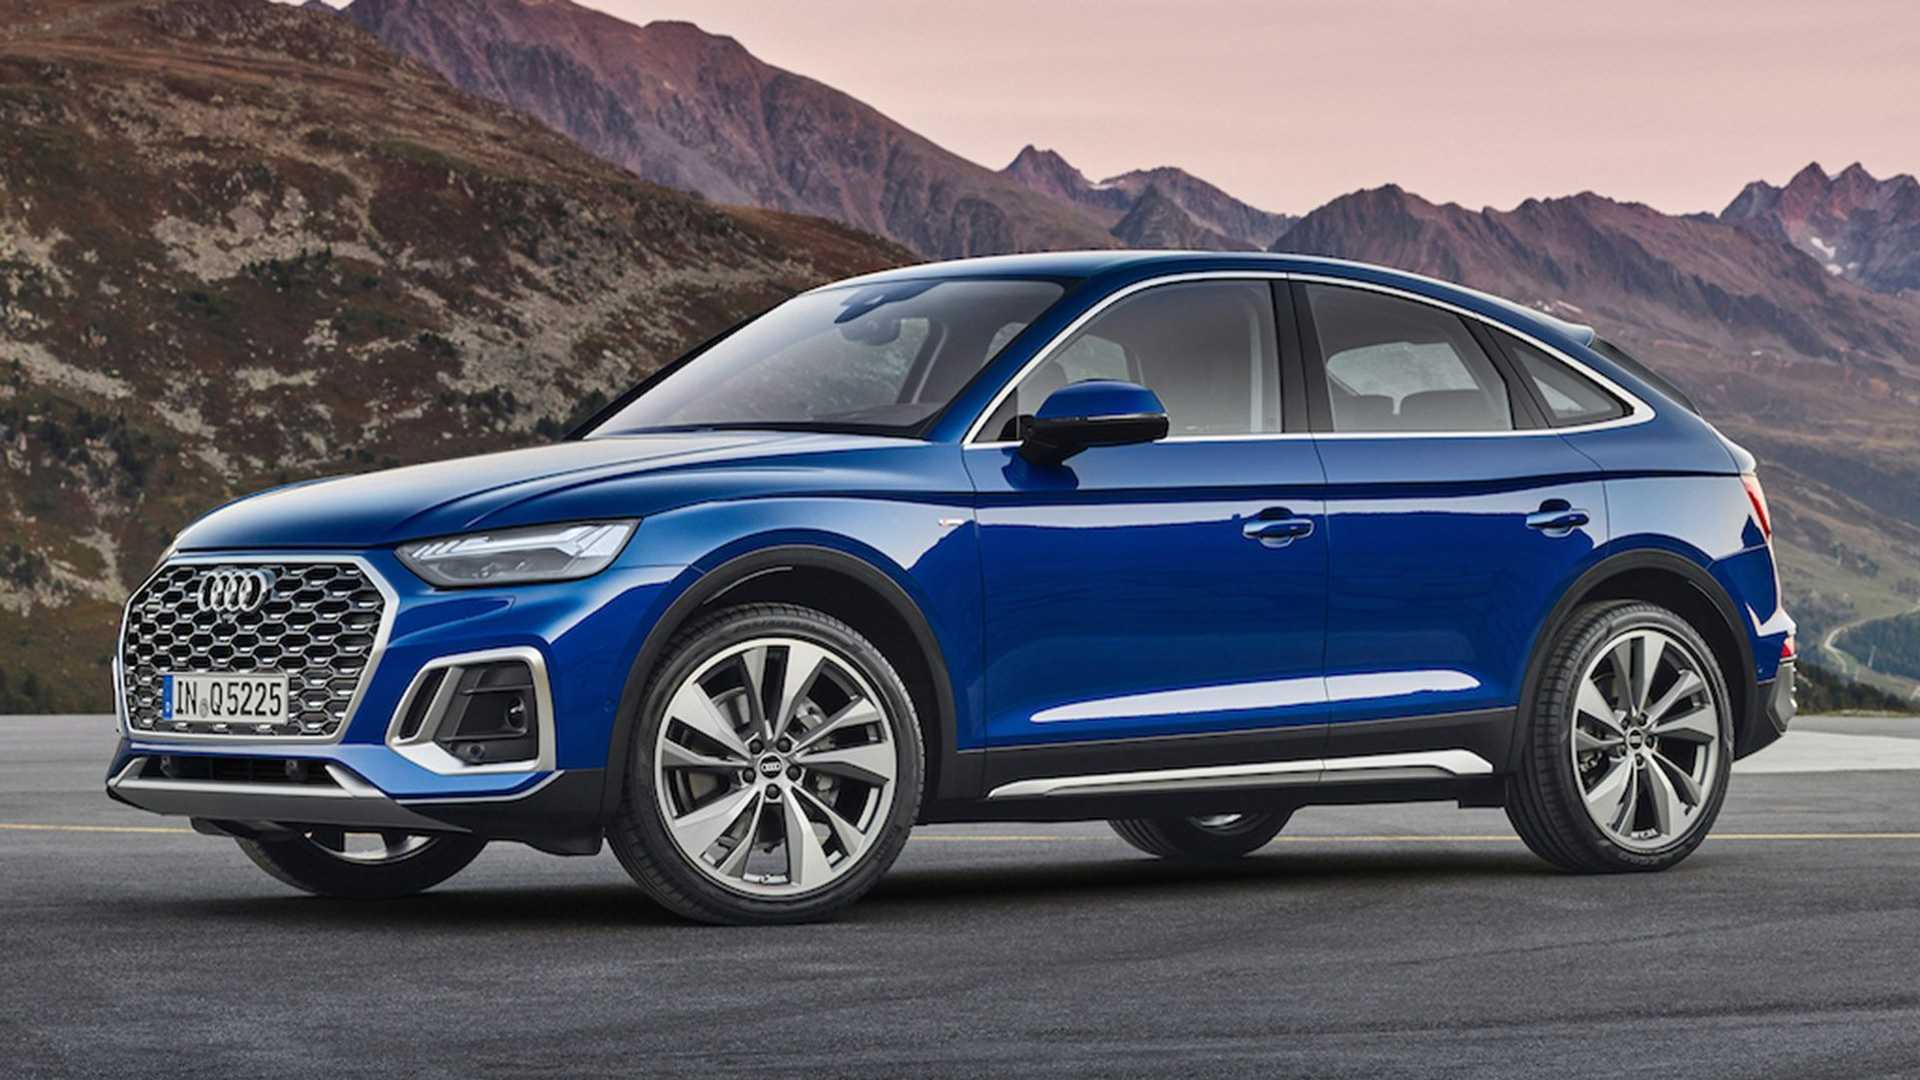 2021 Audi Q5 Sportback Revealed With Sleeker Look, Same ...